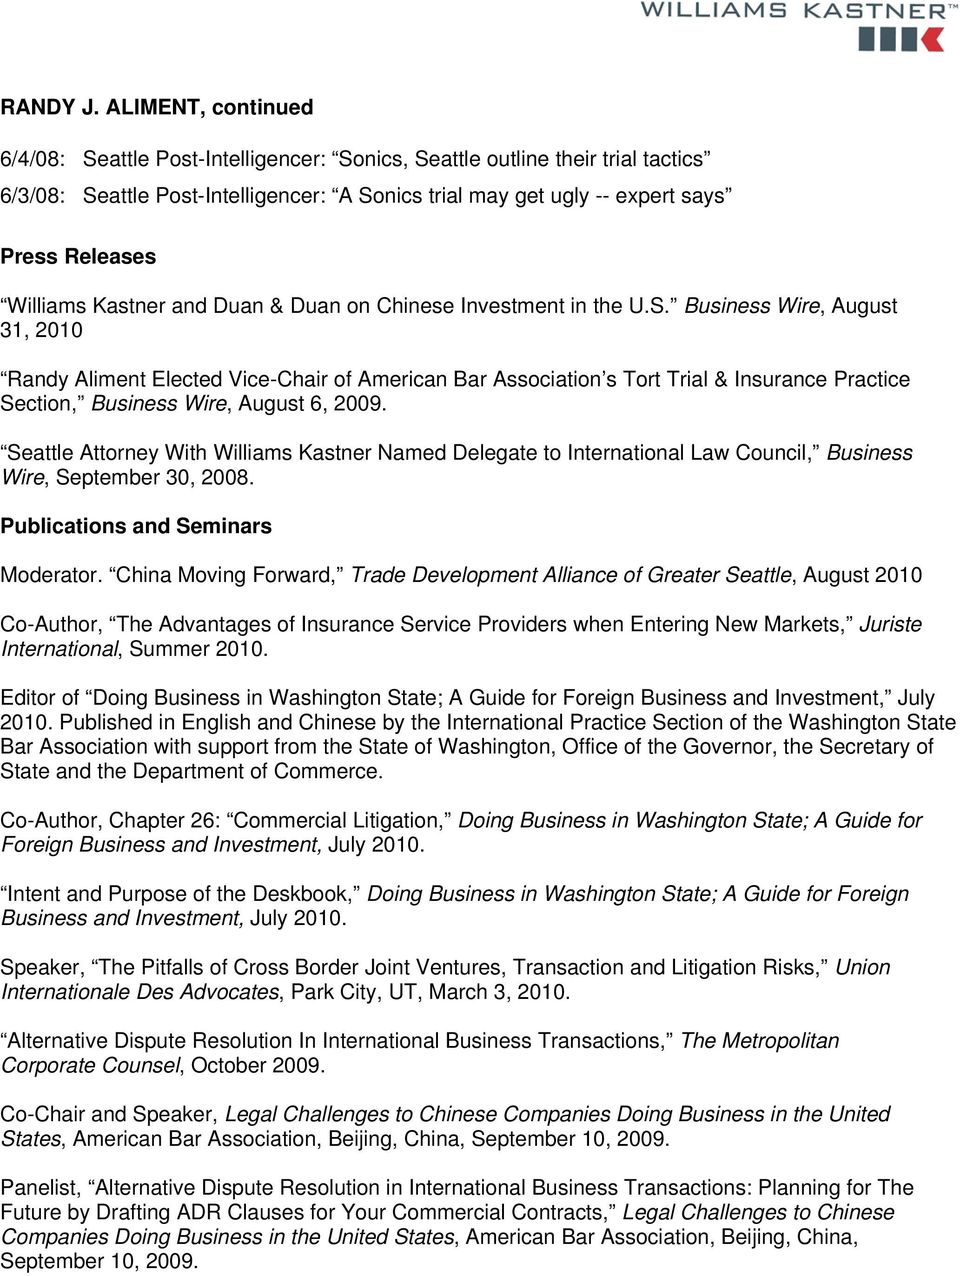 Business Wire, August 31, 2010 Randy Aliment Elected Vice-Chair of American Bar Association s Tort Trial & Insurance Practice Section, Business Wire, August 6, 2009.